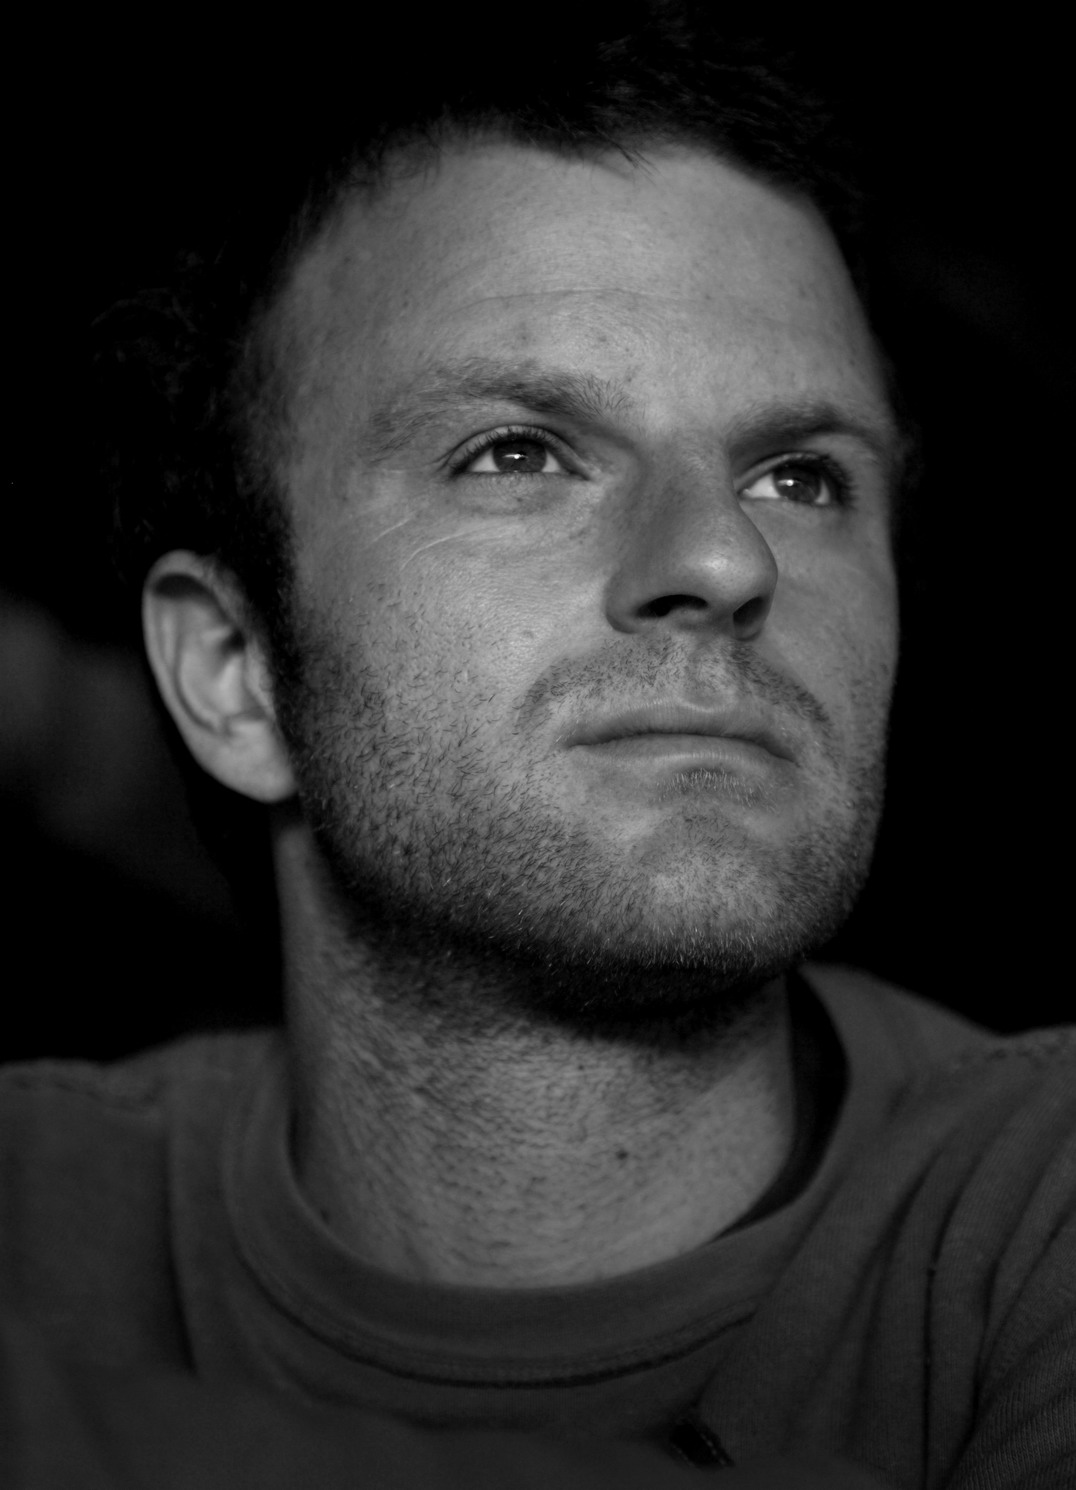 Matt Rivers Portrait Brighton Pier 2007